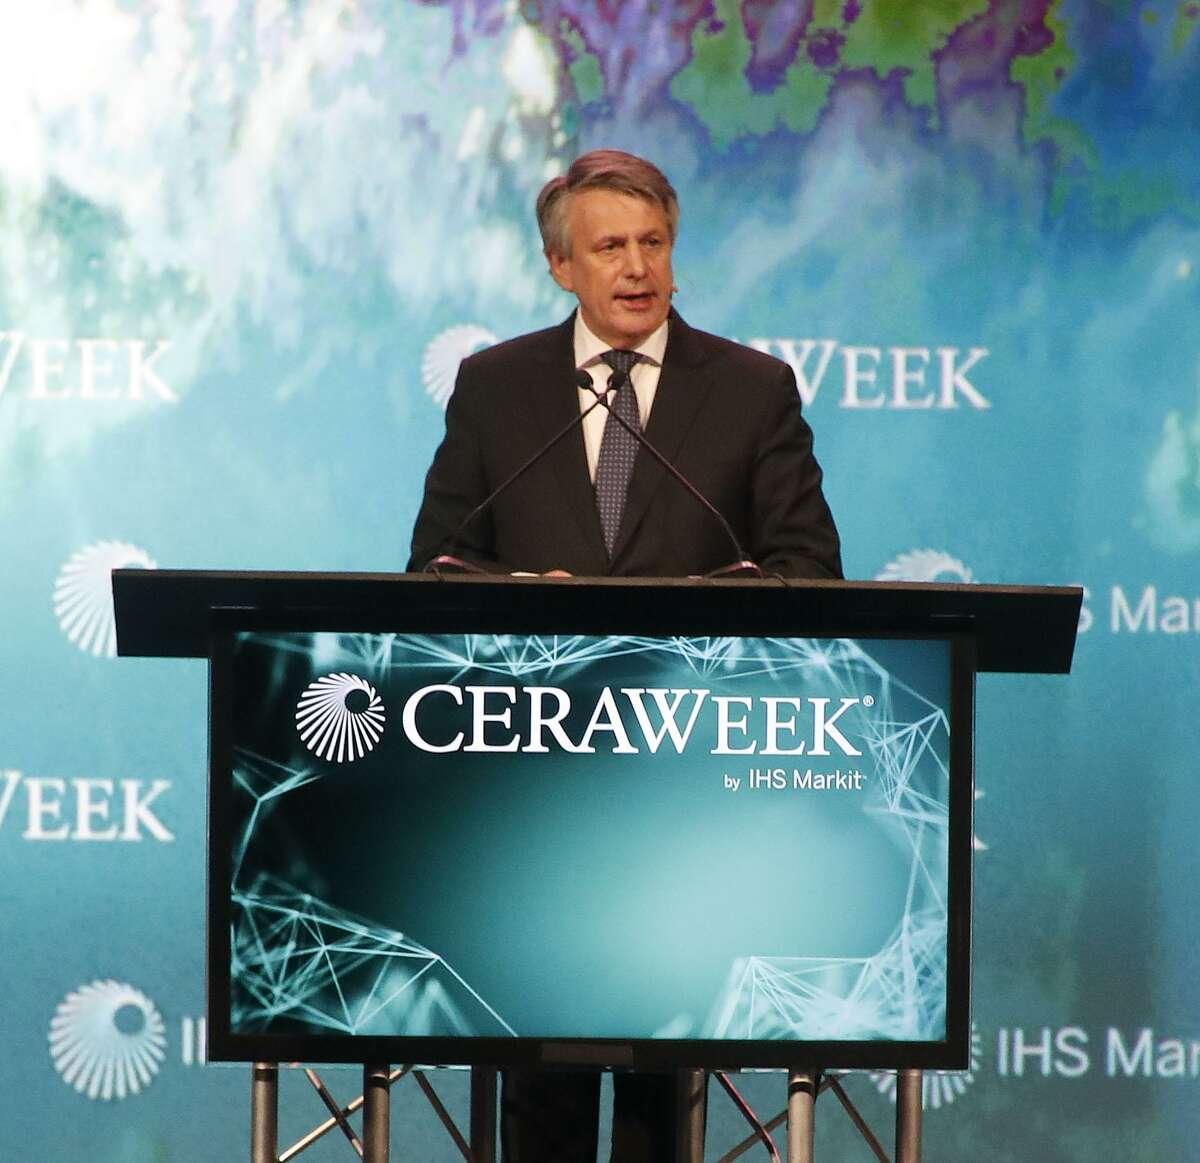 Royal Dutch Shell CEO Ben van Beurden speaks at the CERAWeek conference at the Hilton Americas, Wednesday, March 7, 2018, in Houston. ( Karen Warren / Houston Chronicle )